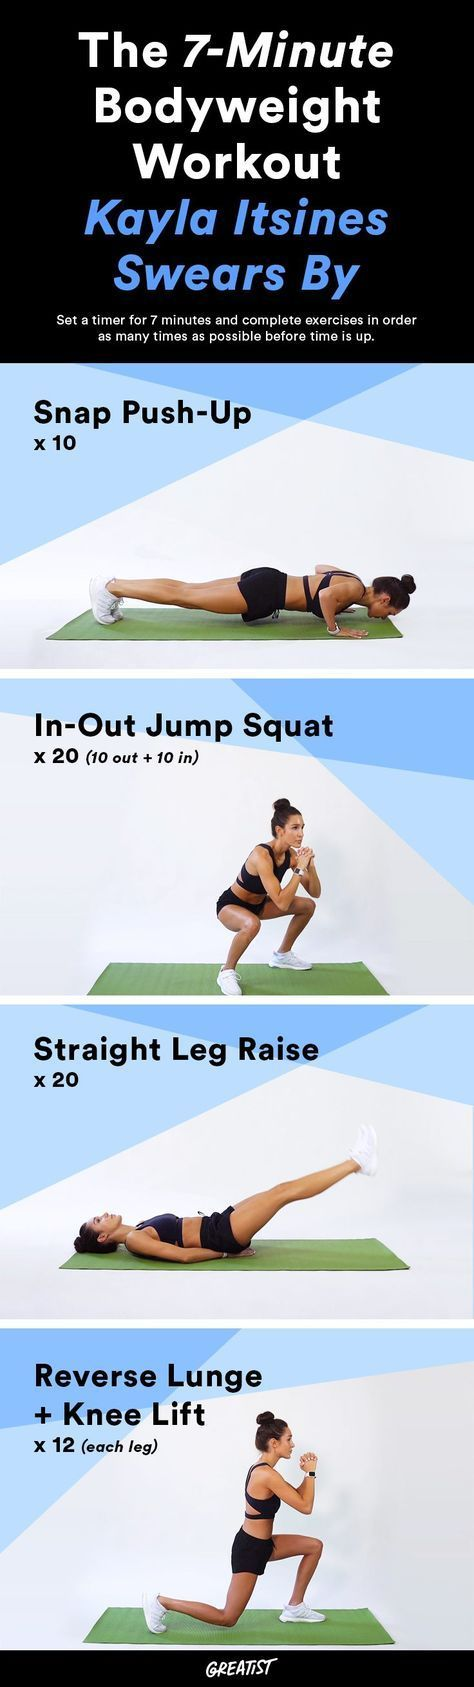 The BBG queen shares her 4 favorite moves. #greatist http://greatist.com/fitness/free-kayla-itsines-workout-7-minute-workout